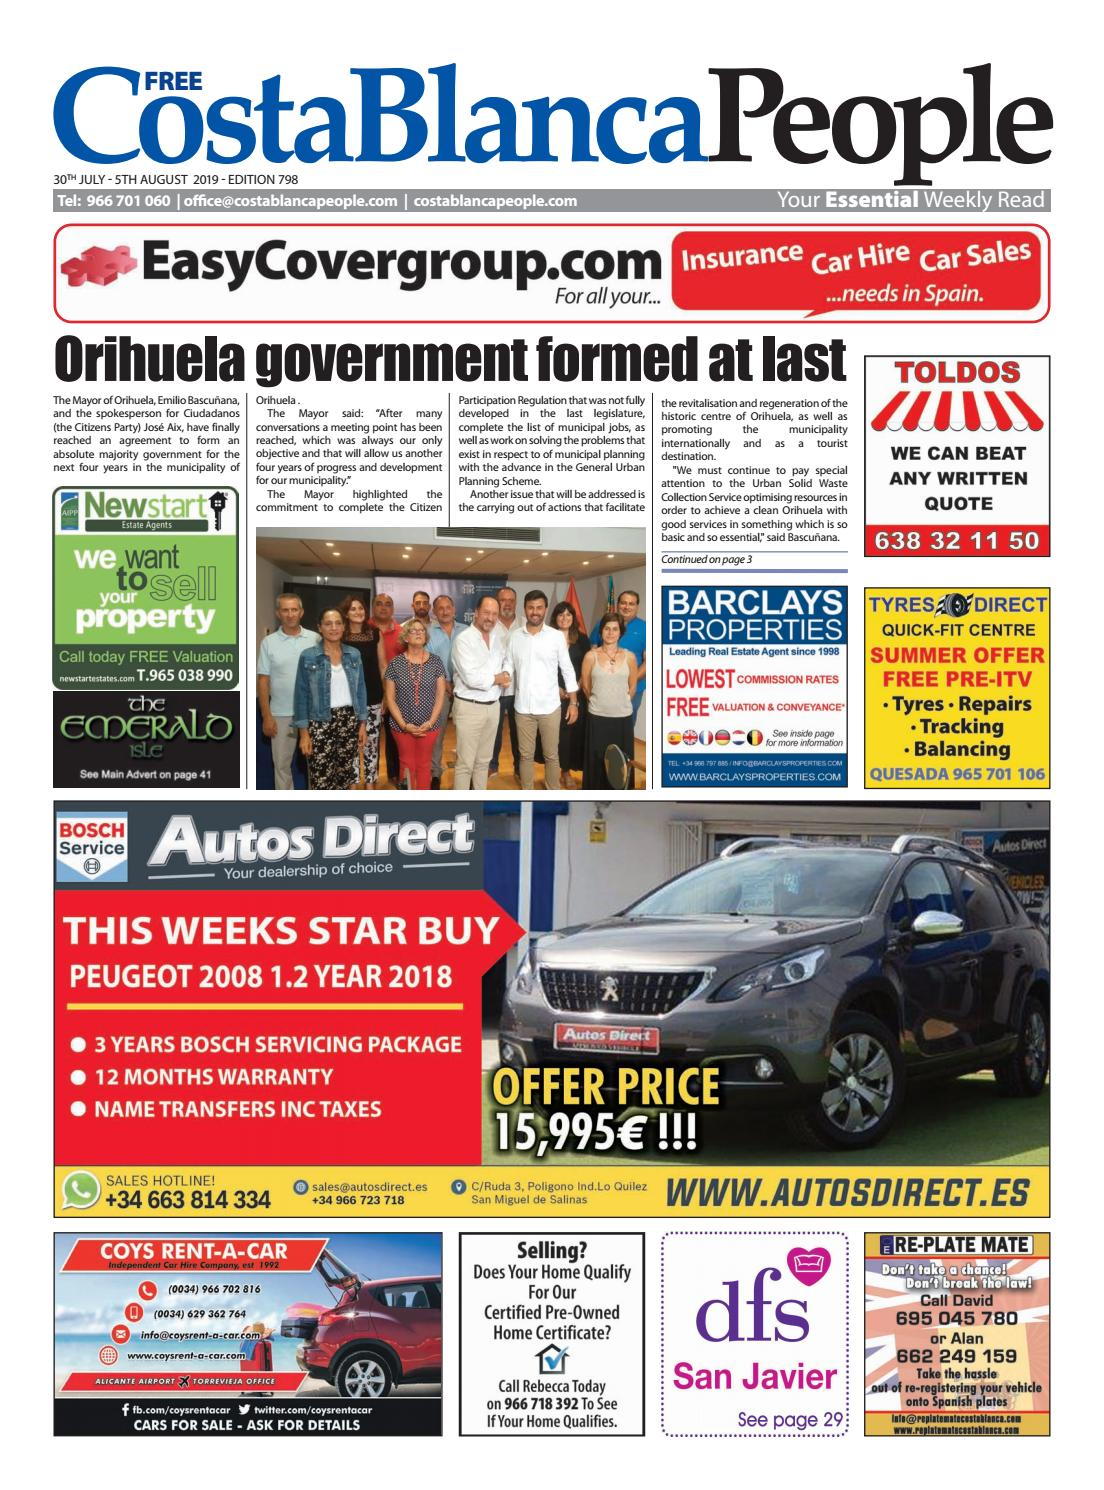 30 July 5 August 2019 By Costa Blanca People Issuu